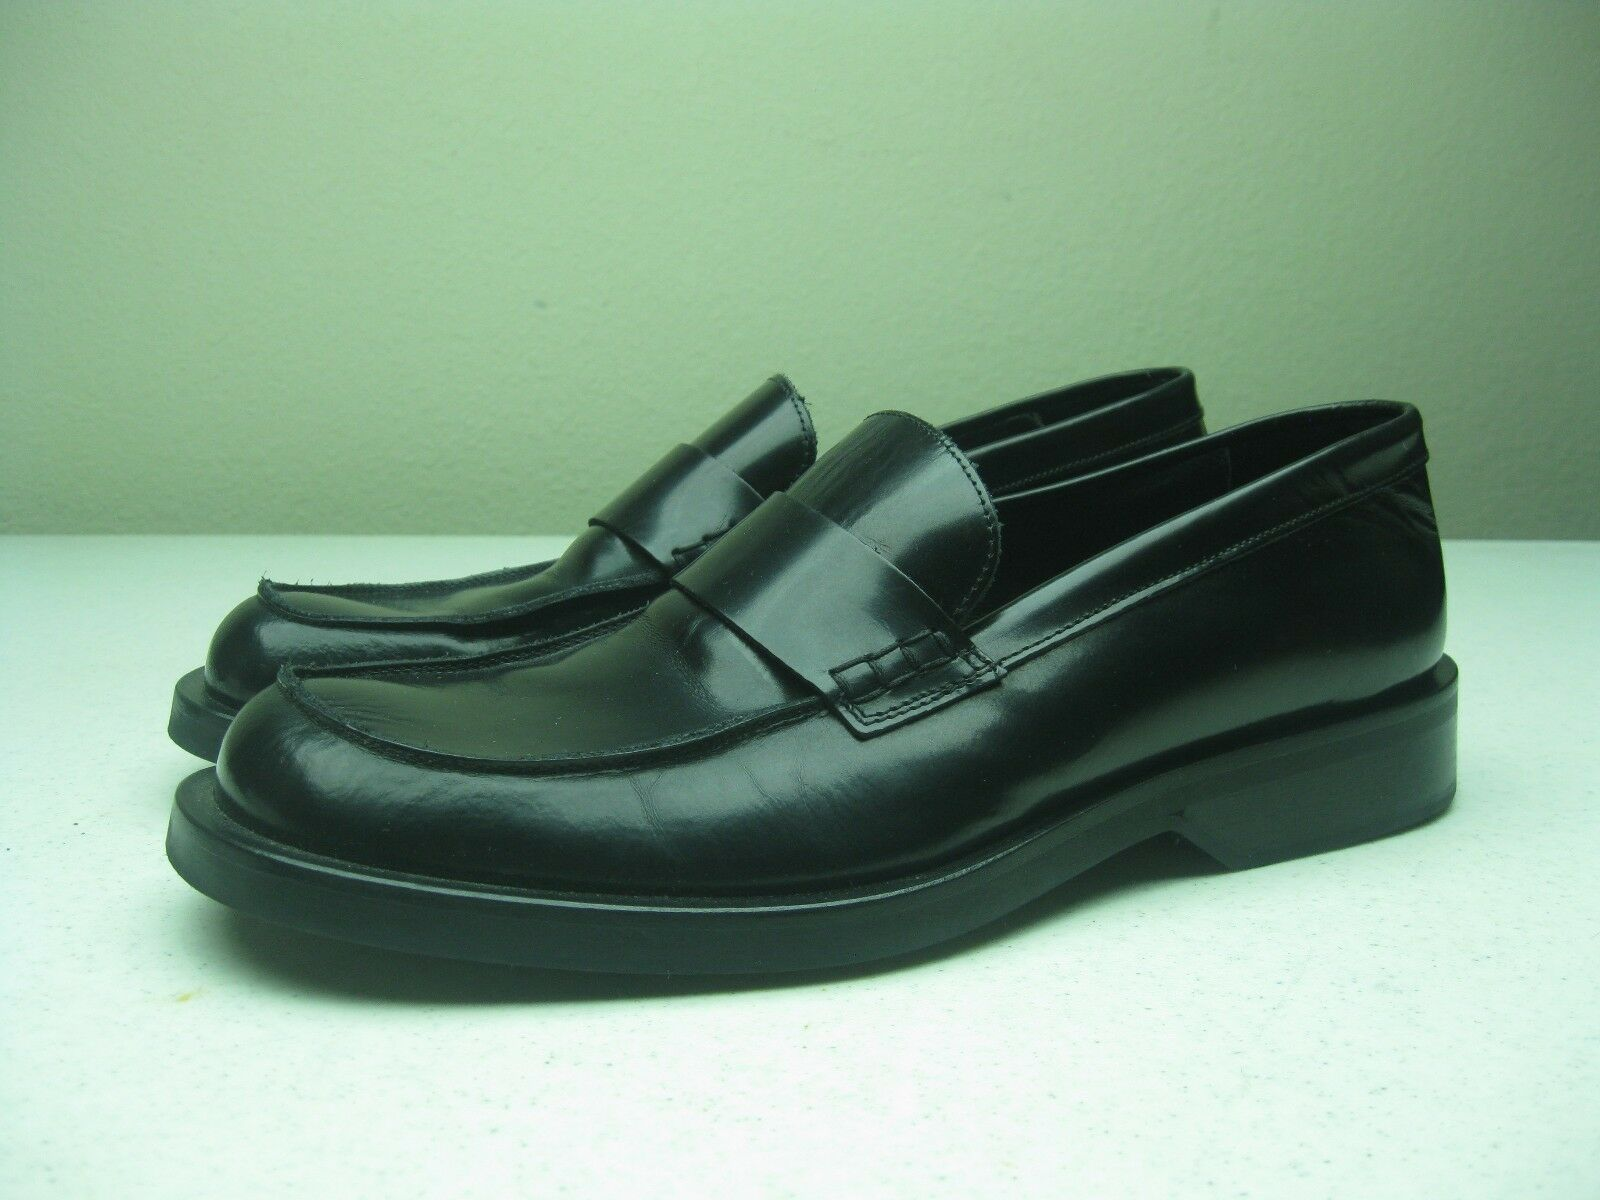 Vintage ITALY J. CREW BLACK CLASSIC LEATHER LOAFER 9 M EXECUTIVE BUSINESS SHOES